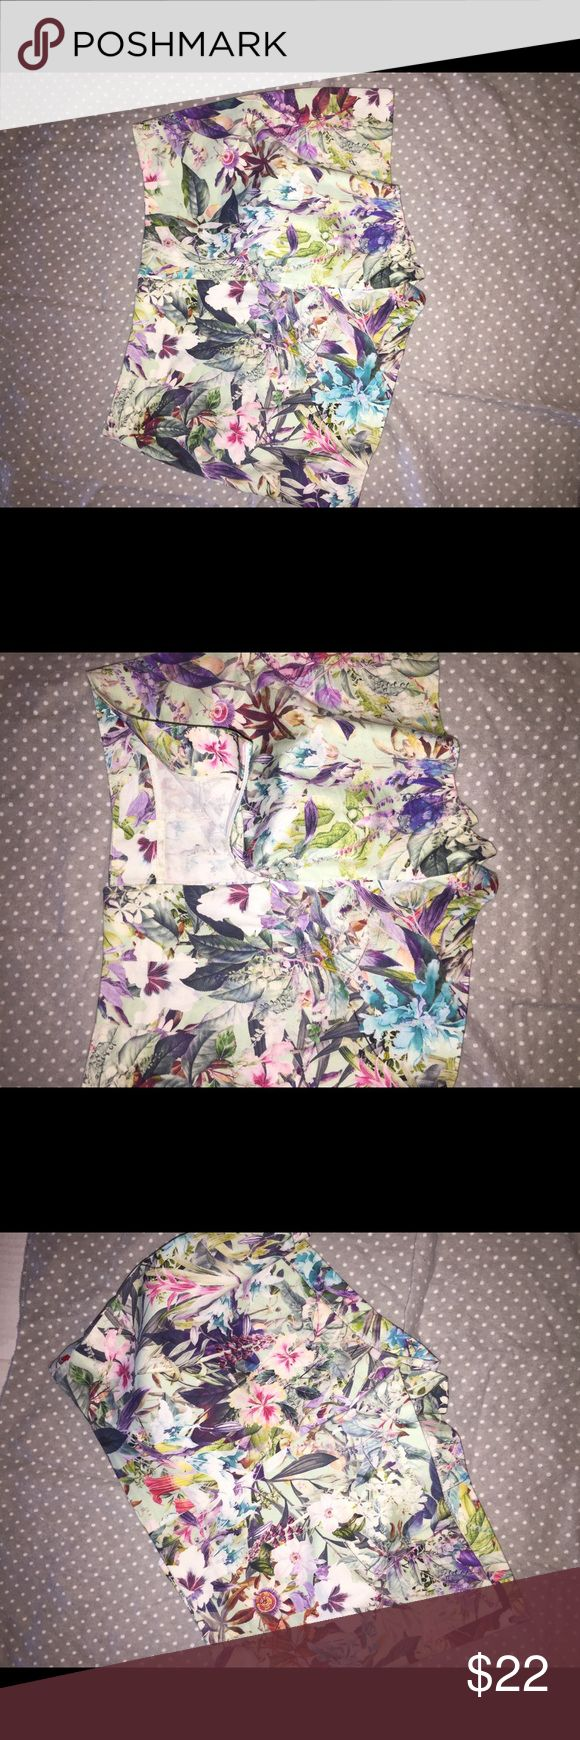 Zara basic shorts Like new never worn because they never fit me. Super cute perfect for spring/summer. You won't go bad with these. They are so pretty !!! My loss your gain. Smoke free and pet free home. Zara Shorts